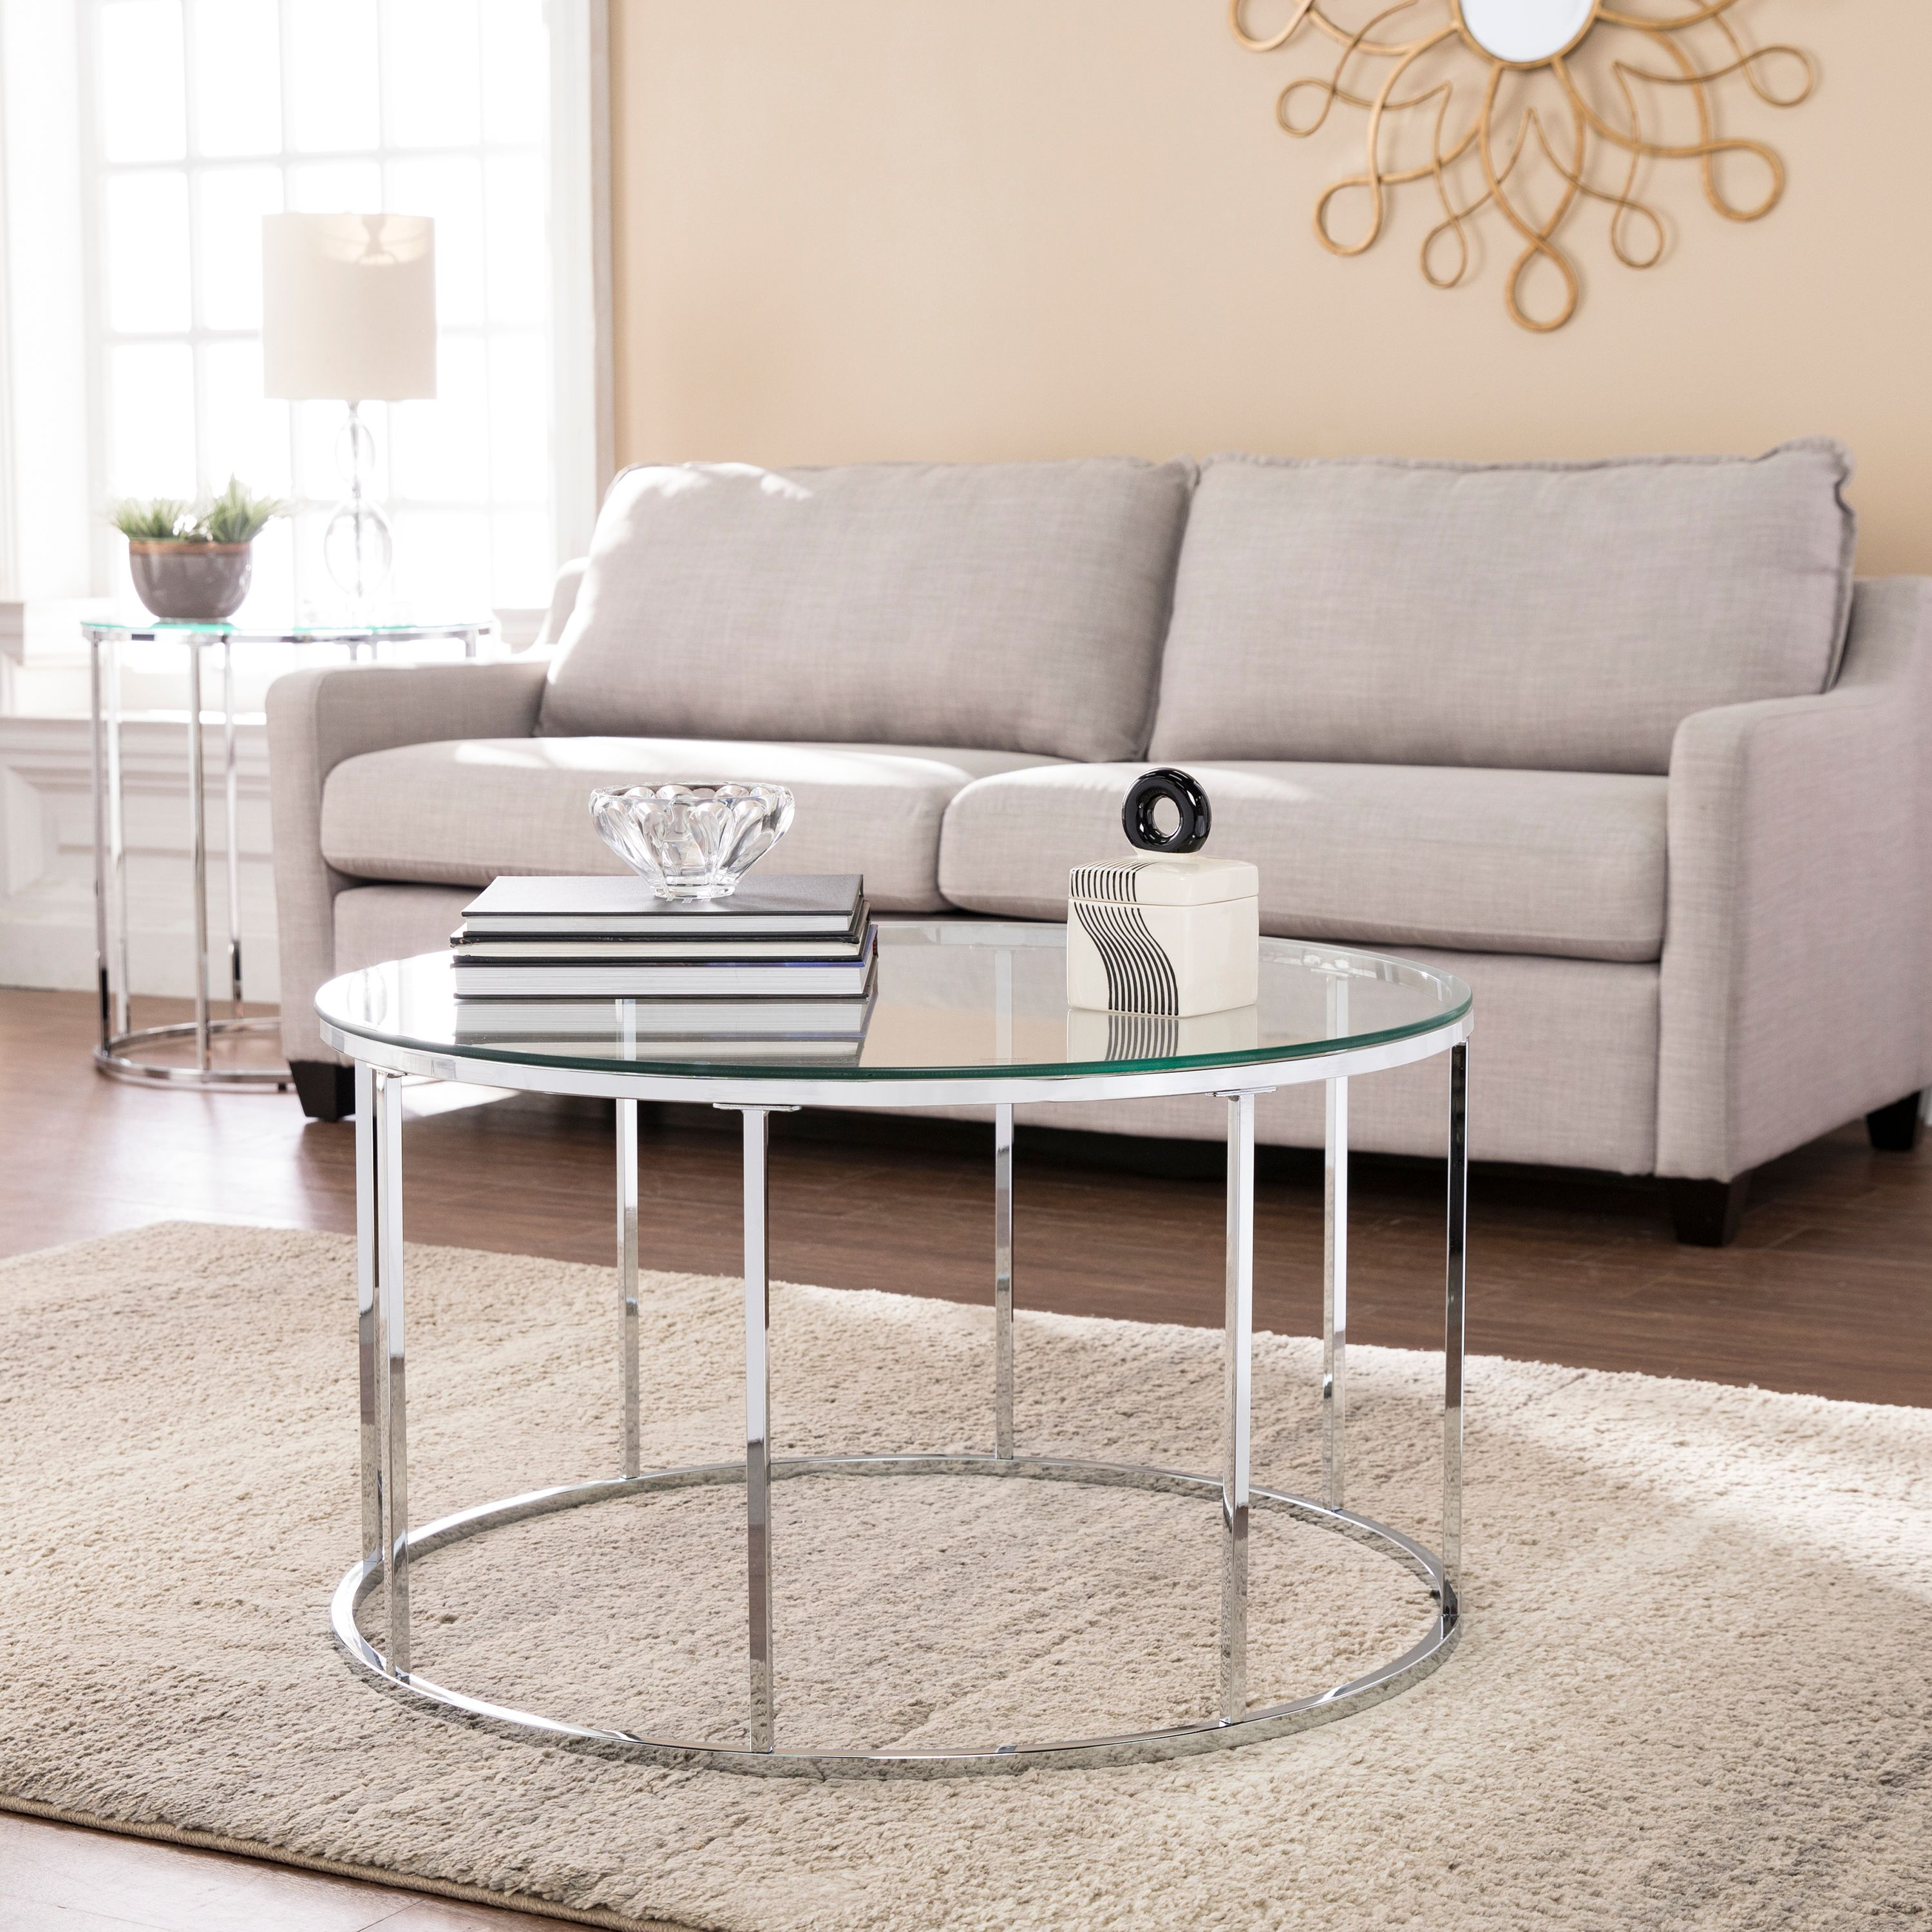 Southern Enterprises Crotti Round Cocktail Table w/ Glass Top, Glam Style, Chrome